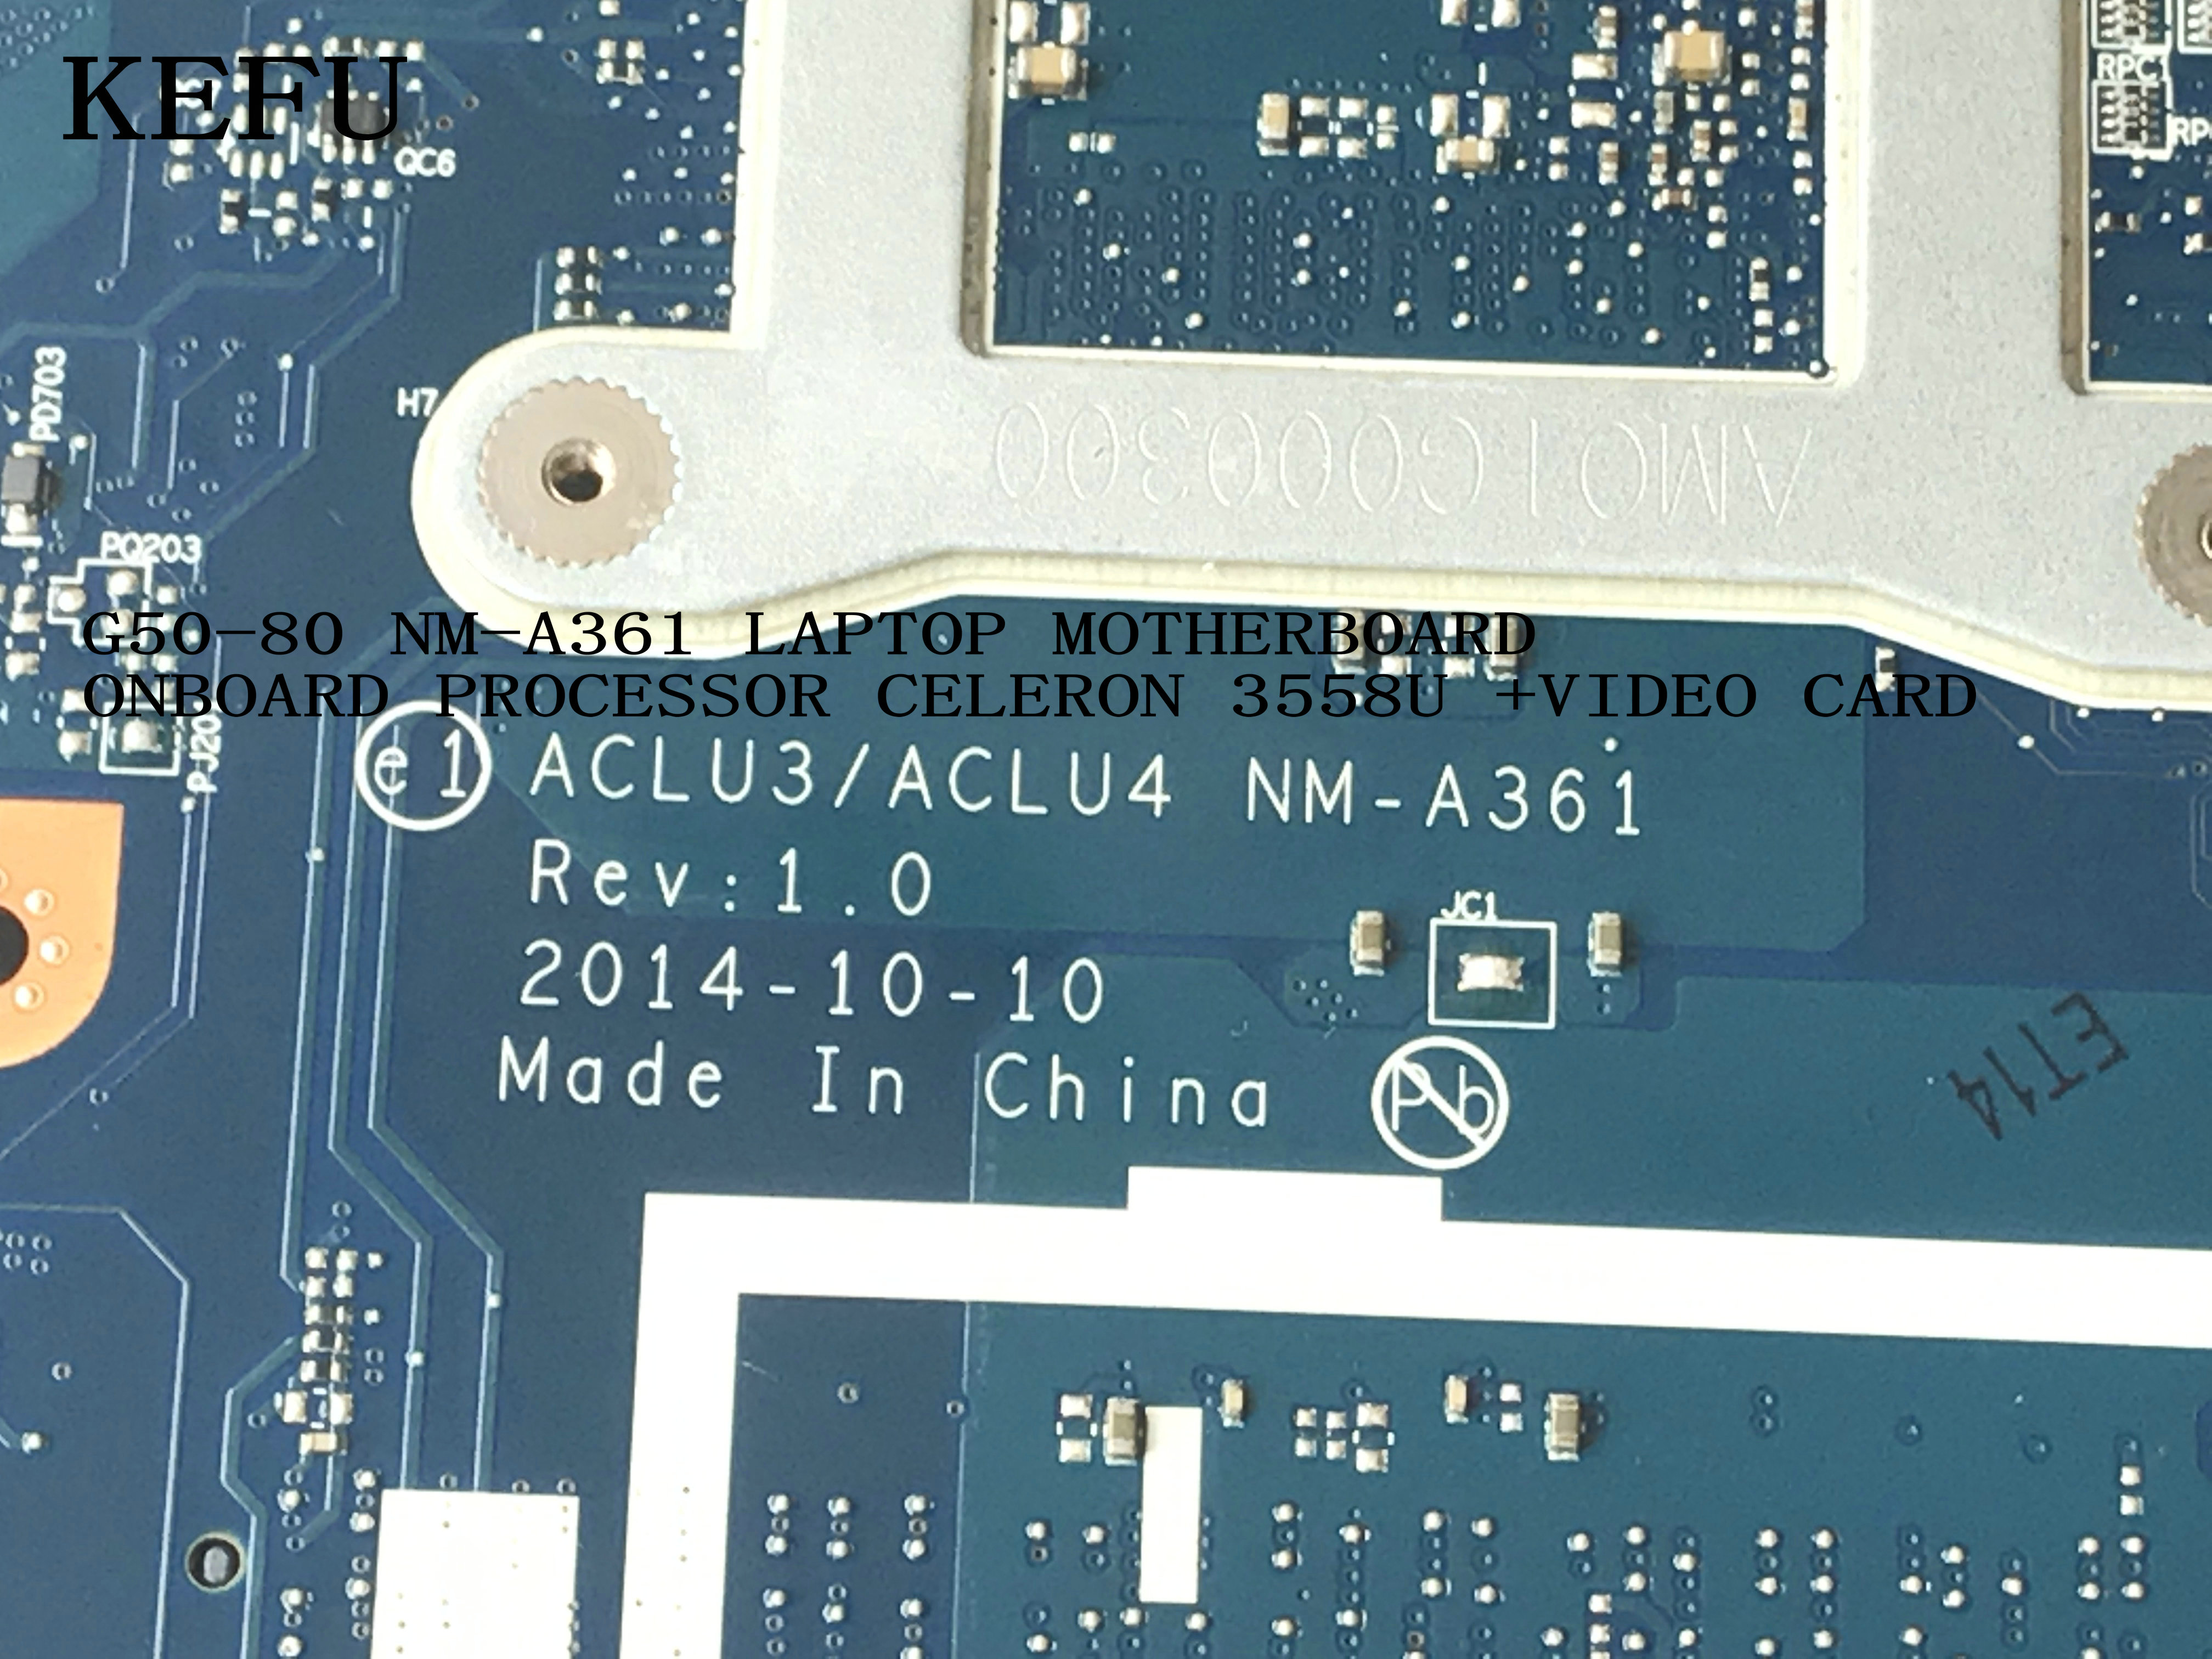 KEFU AVAILABLE ACLU3 / ACLU4 <font><b>NM</b></font>-<font><b>A361</b></font> For <font><b>LENOVO</b></font> G50-80 Laptop Motherboard ONBOARD PROCESSOR 3558U +VIDEO CARD(qualified ok) image